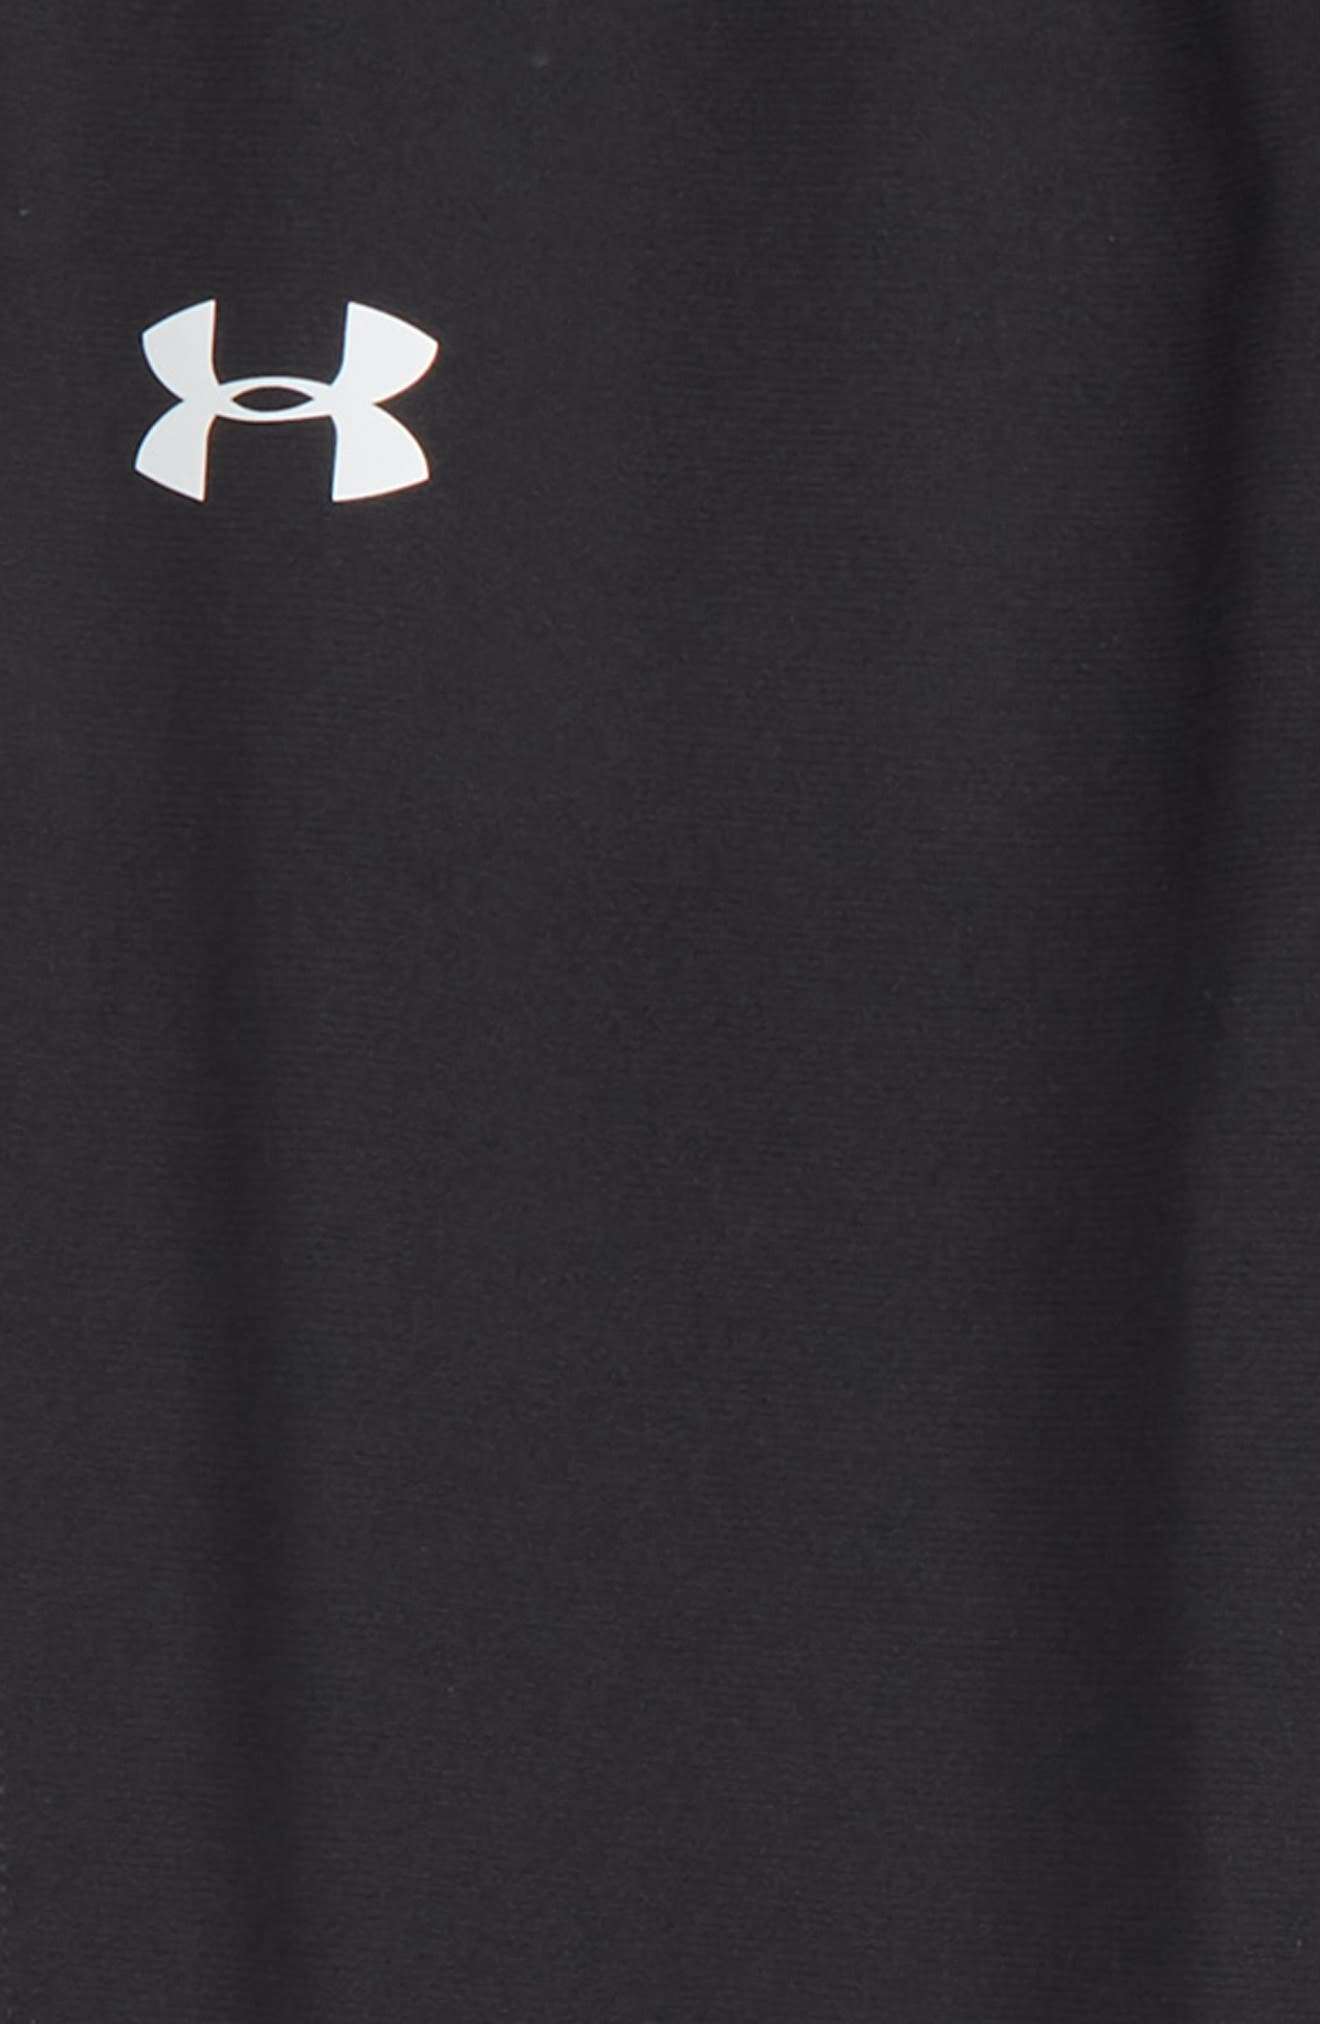 UNDER ARMOUR, Brawler Tapered Sweatpants, Alternate thumbnail 2, color, BLACK/ WHITE